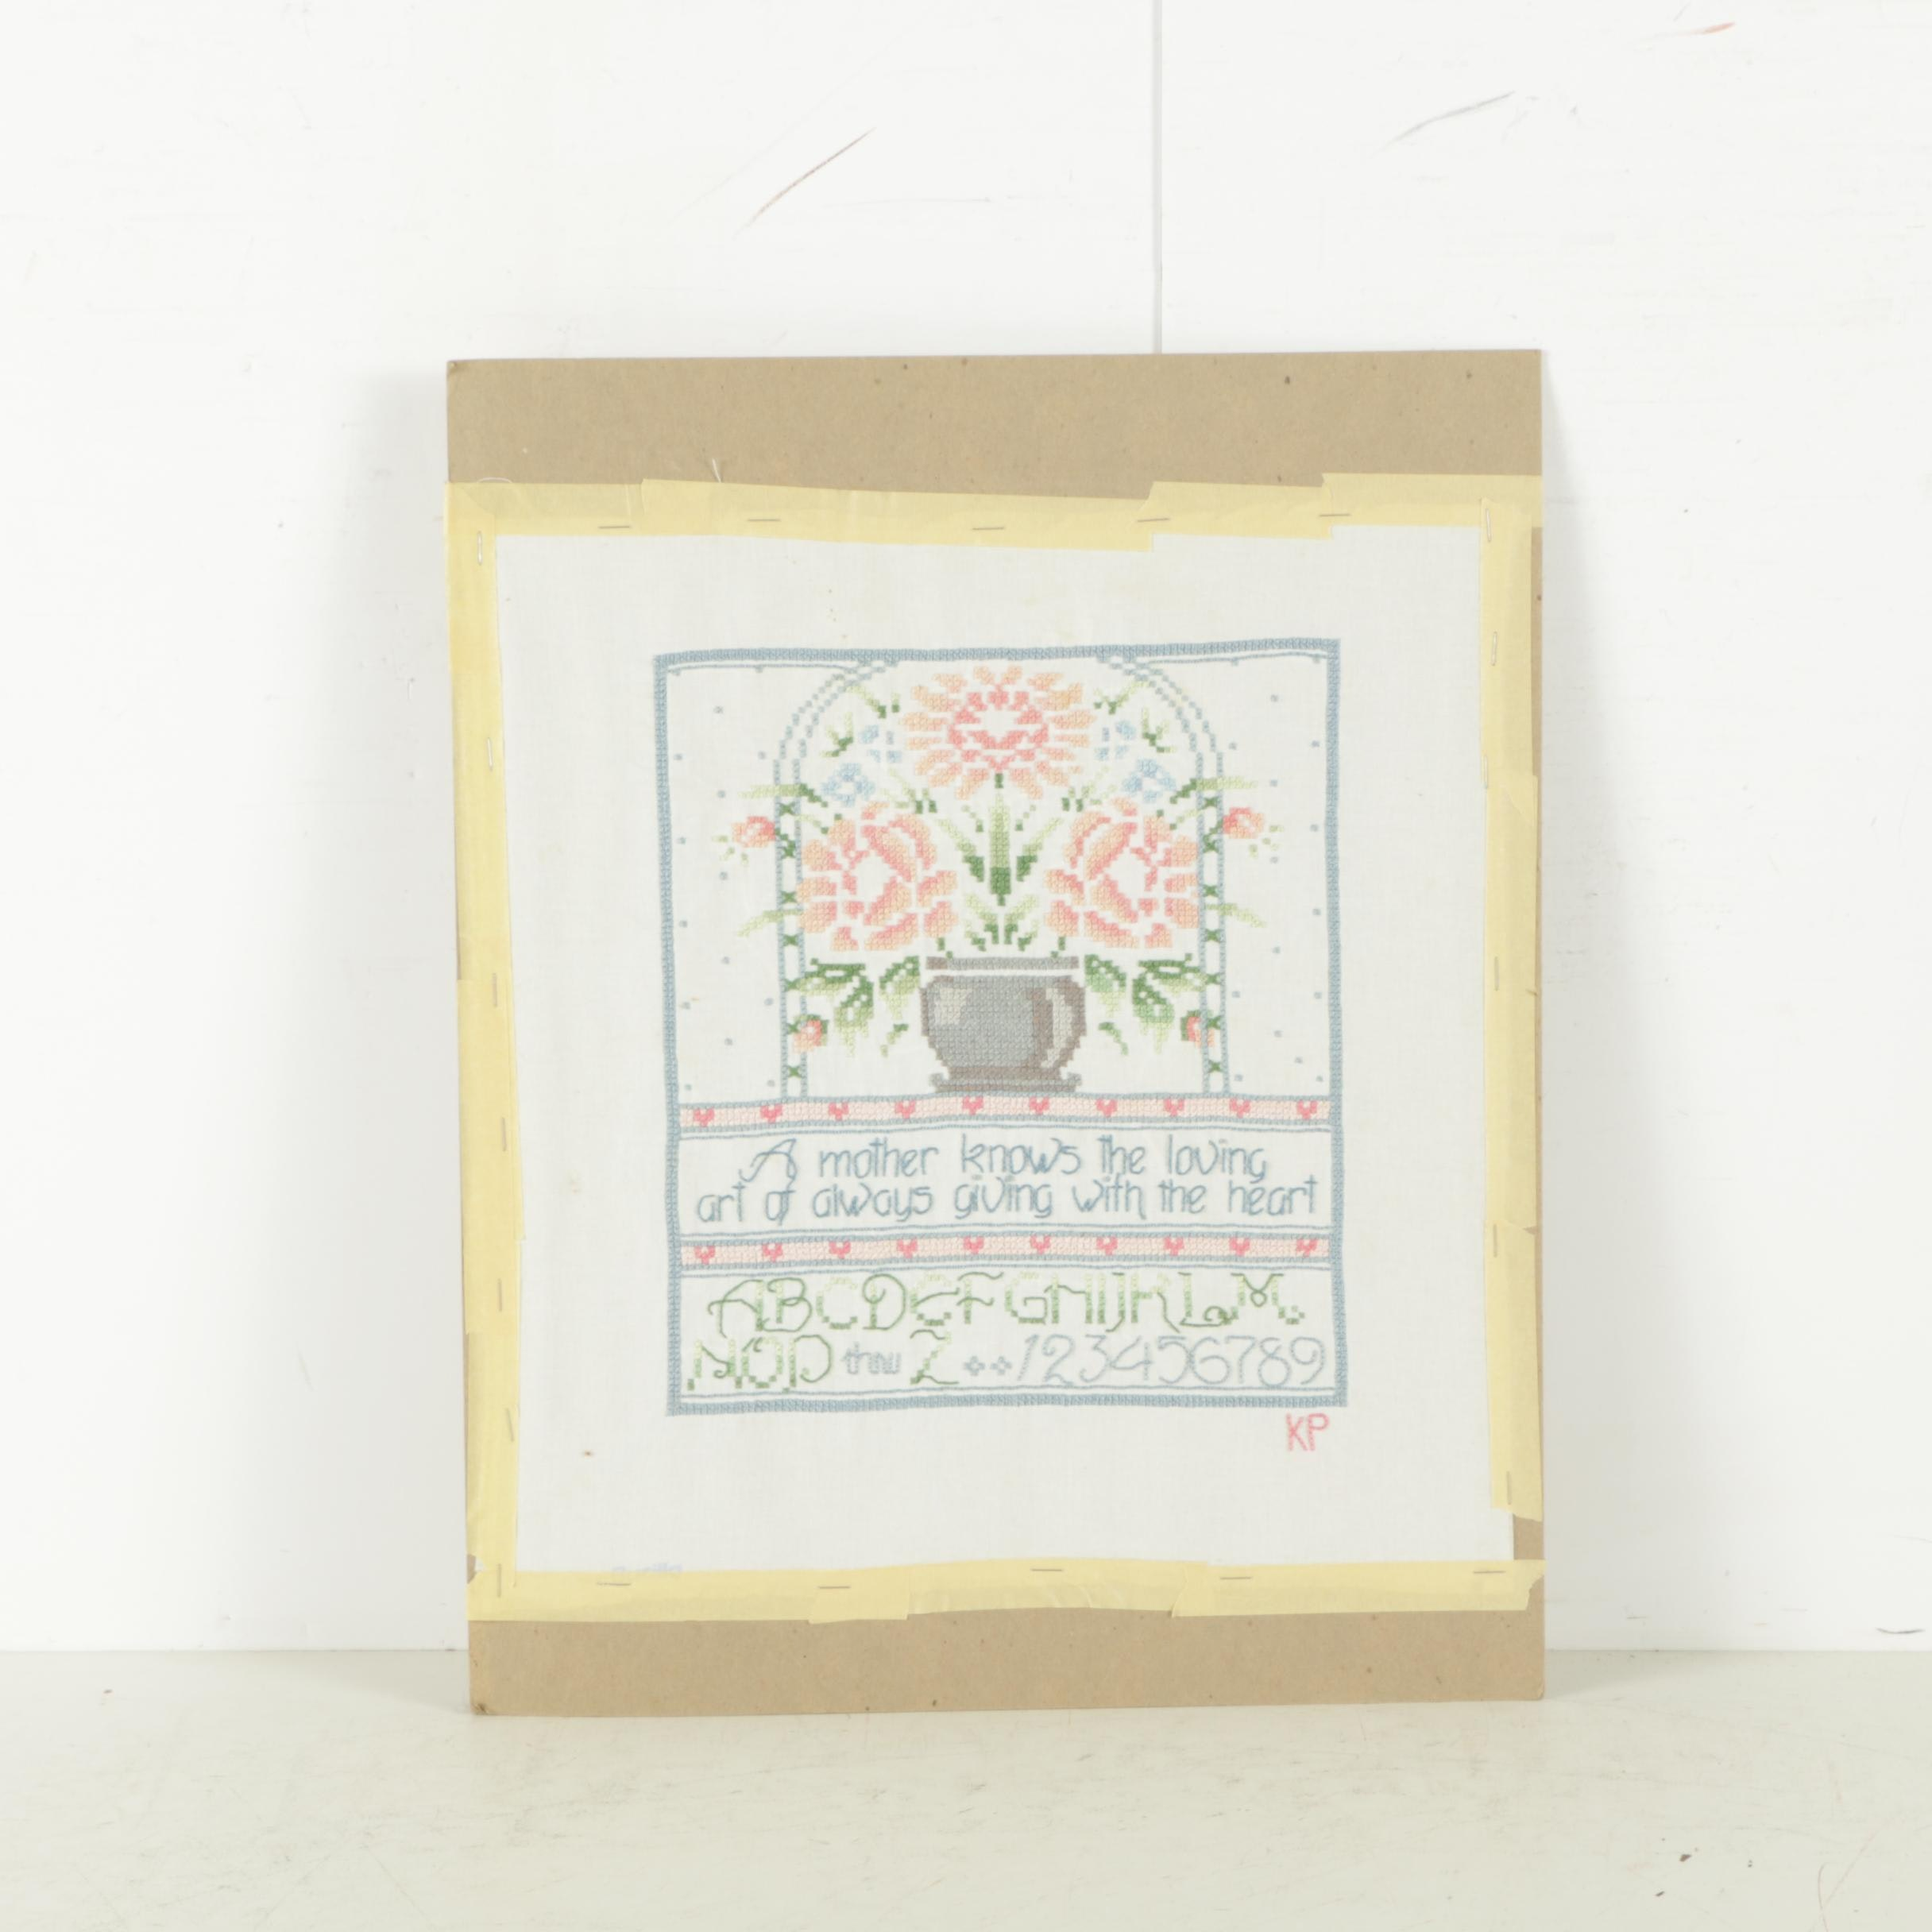 "Needlepoint Sampler ""A Mother Knows the Loving Art.."""